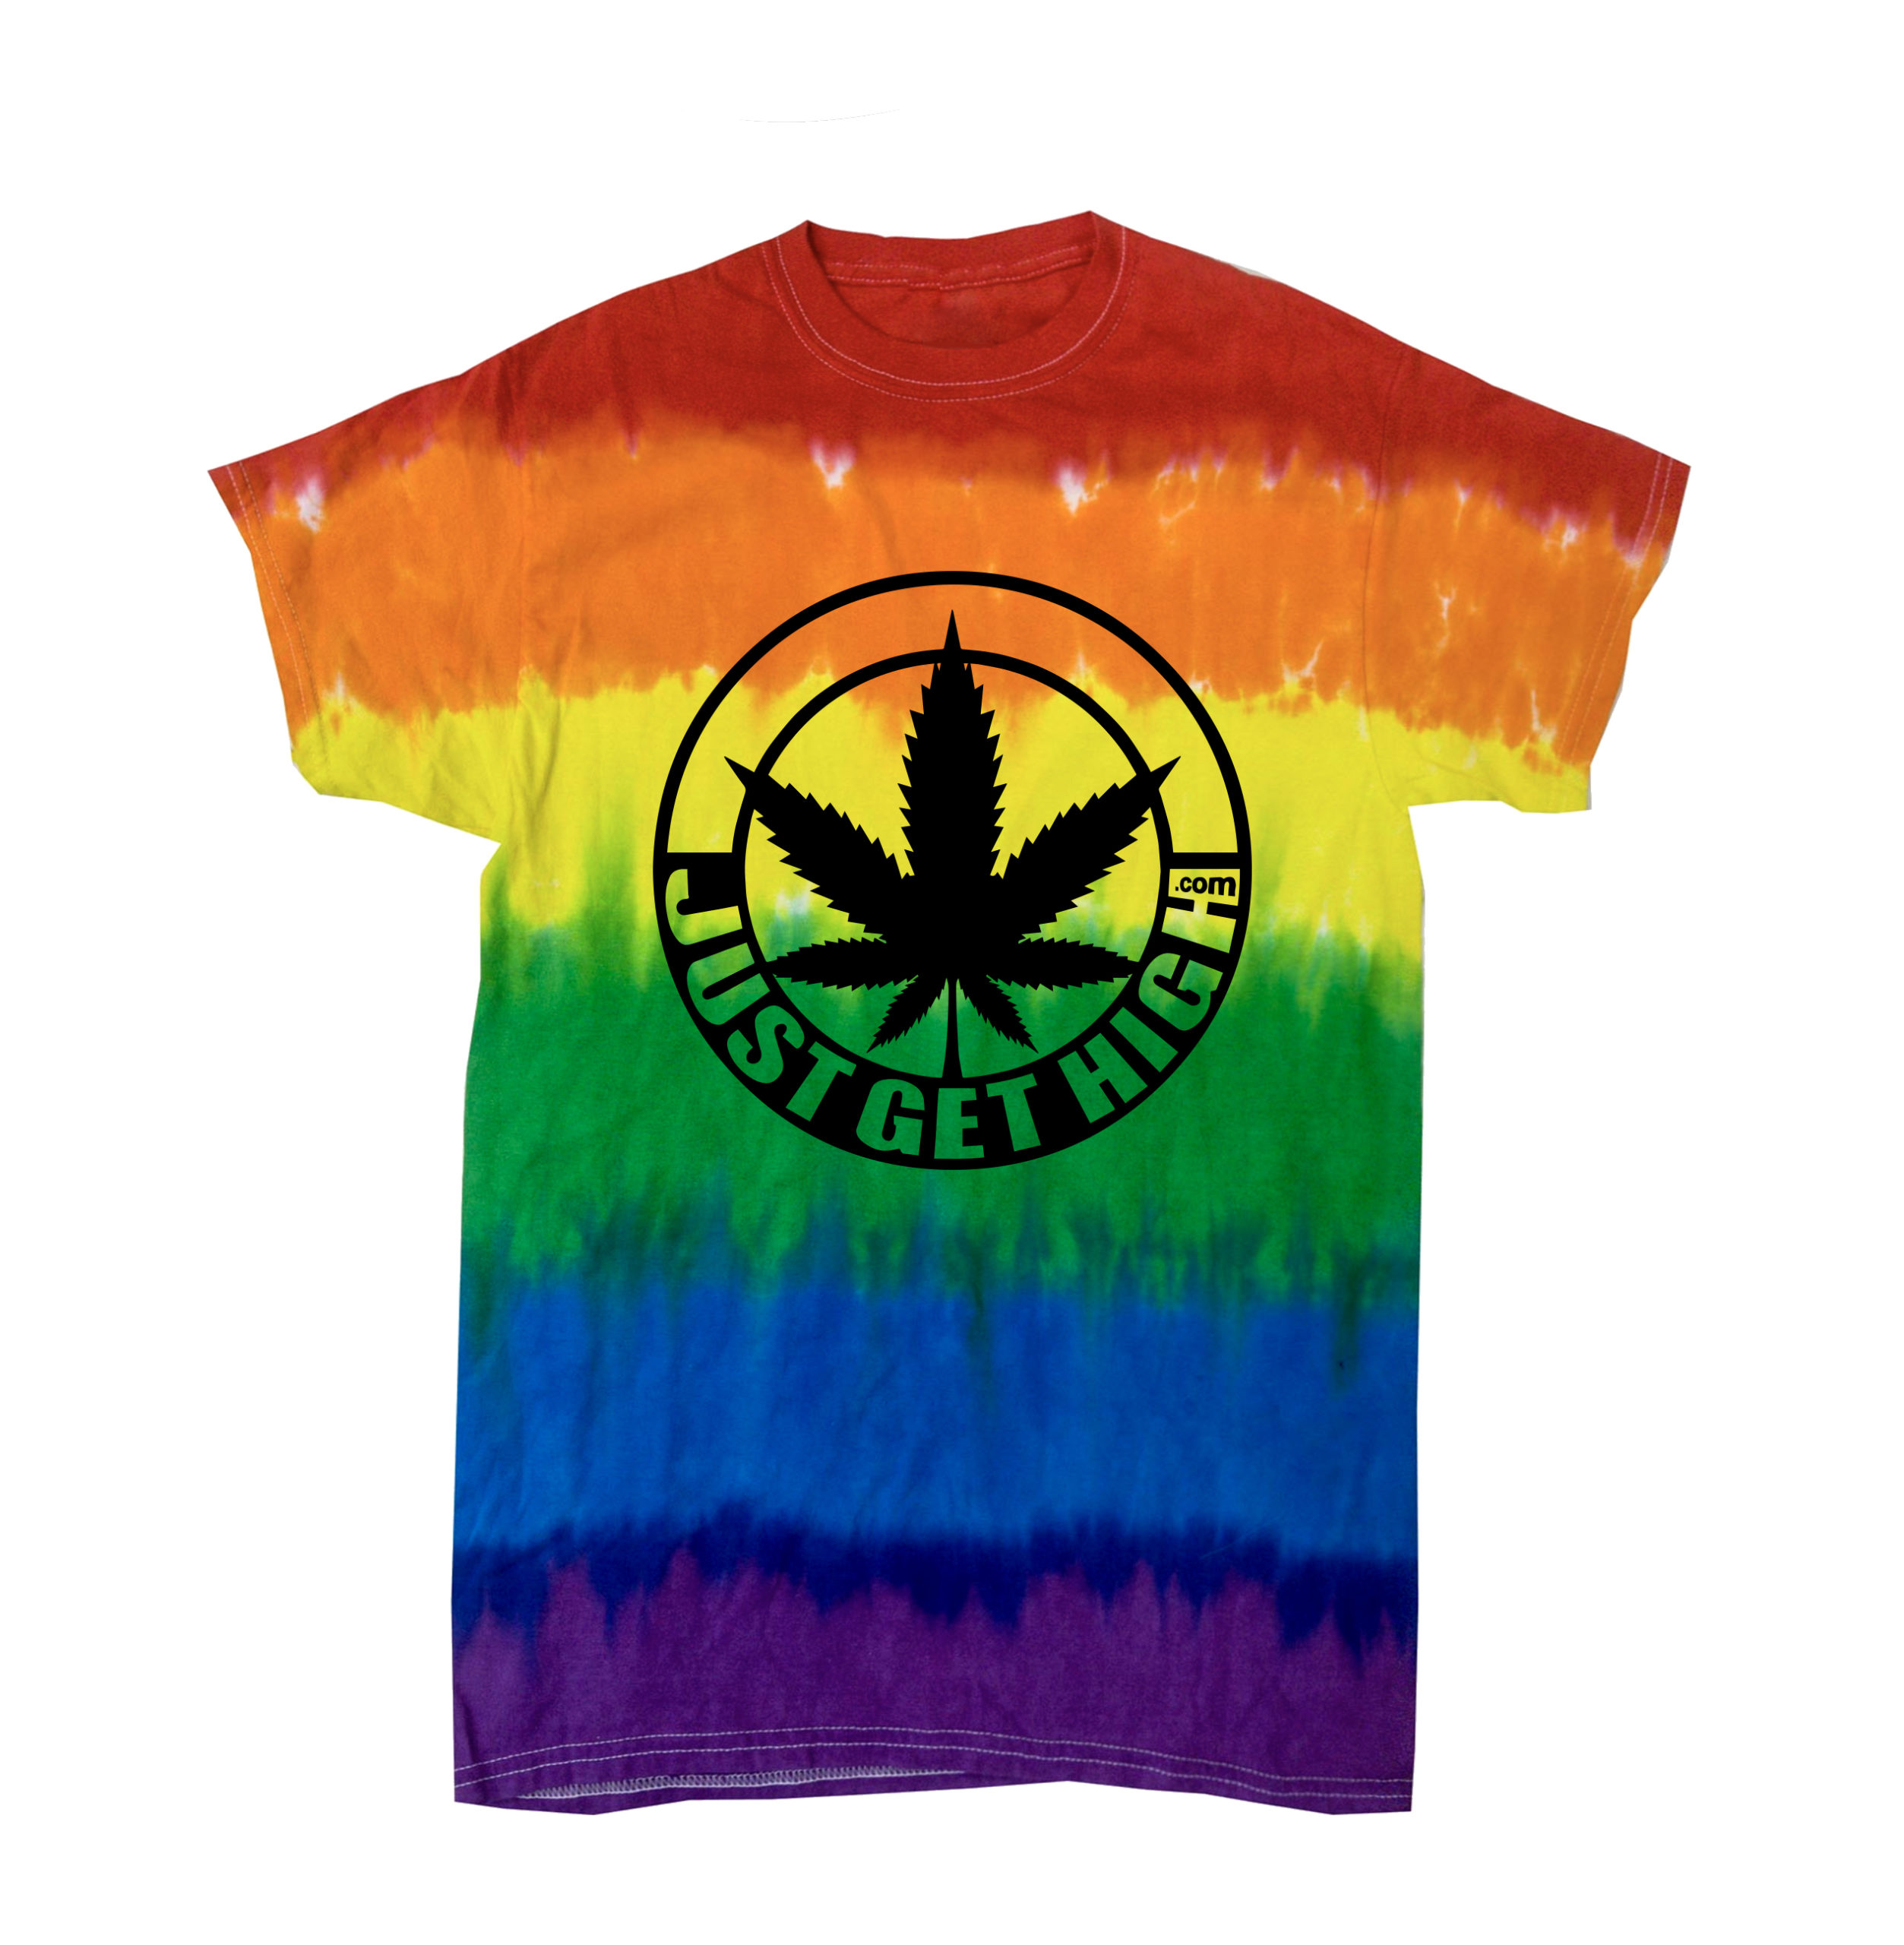 JUST GET HIGH_PRIDE_tie dye shirt